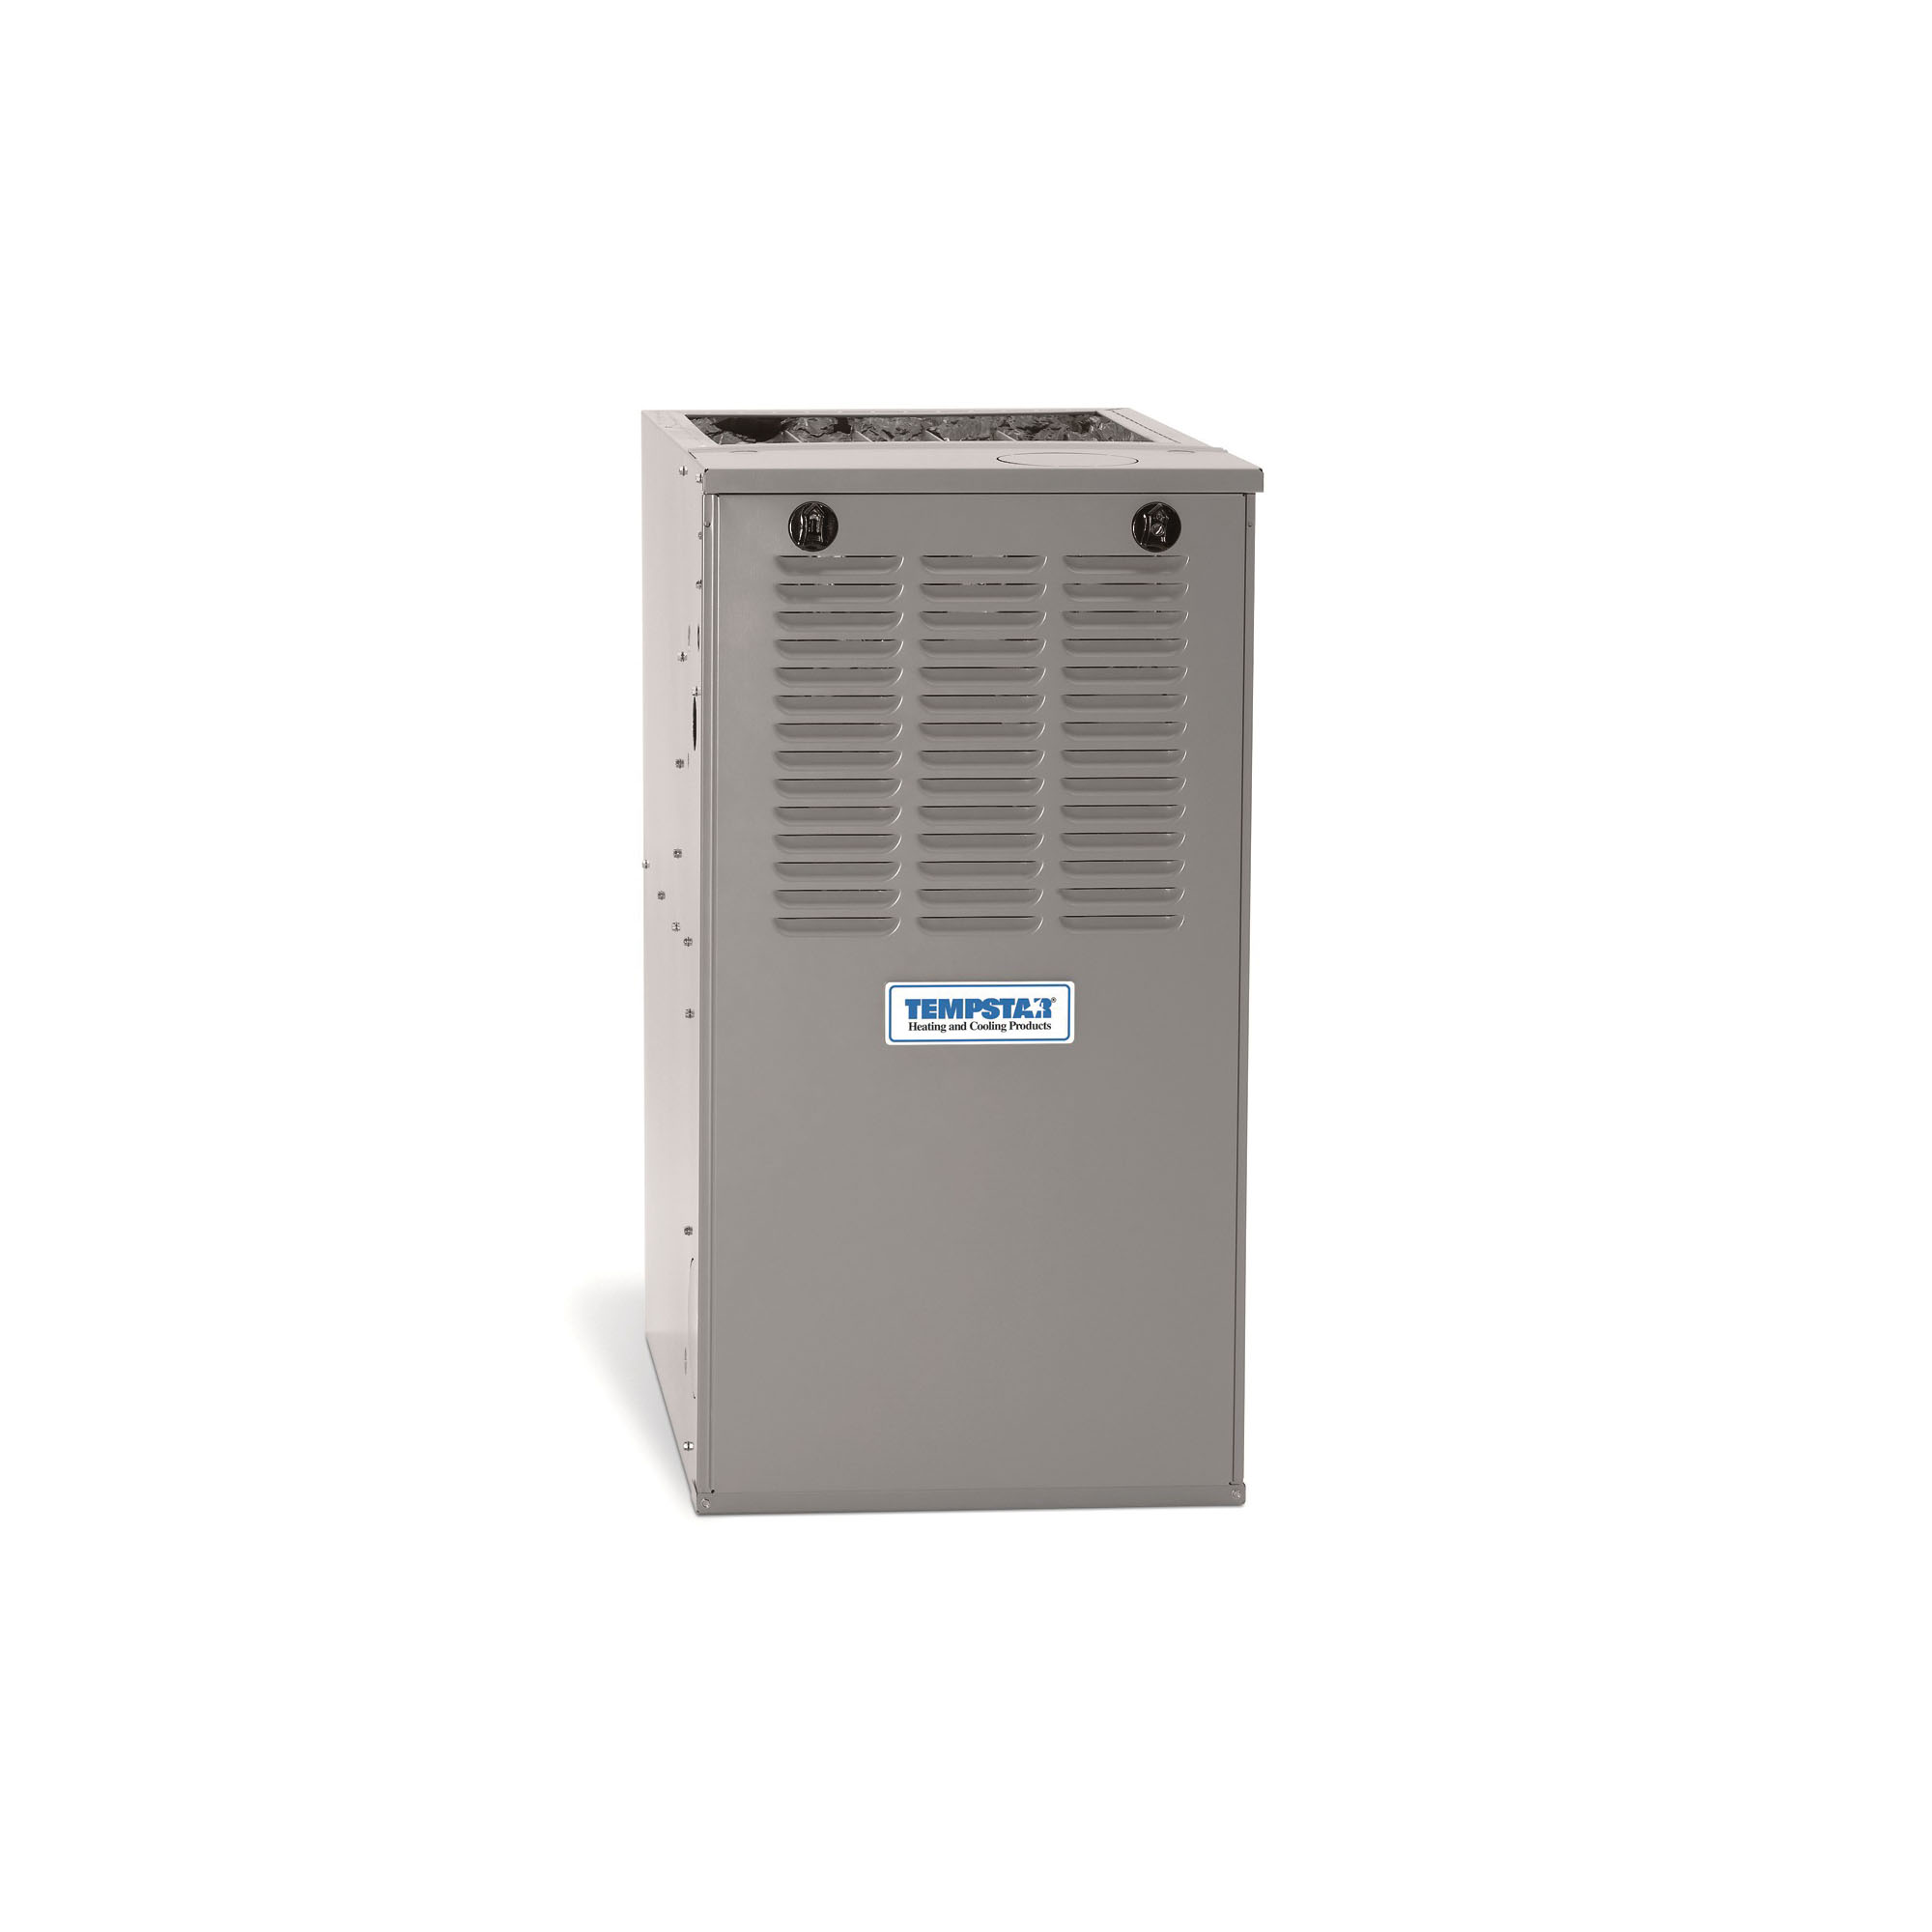 ICP® N8MXL0902116A Performance® N8MXL Low NOx Multi-Position Gas Furnace, 88000 BTU/hr Input, 21000 BTU/hr Output, 115 VAC, 80% AFUE, 1445 cfm, Domestic